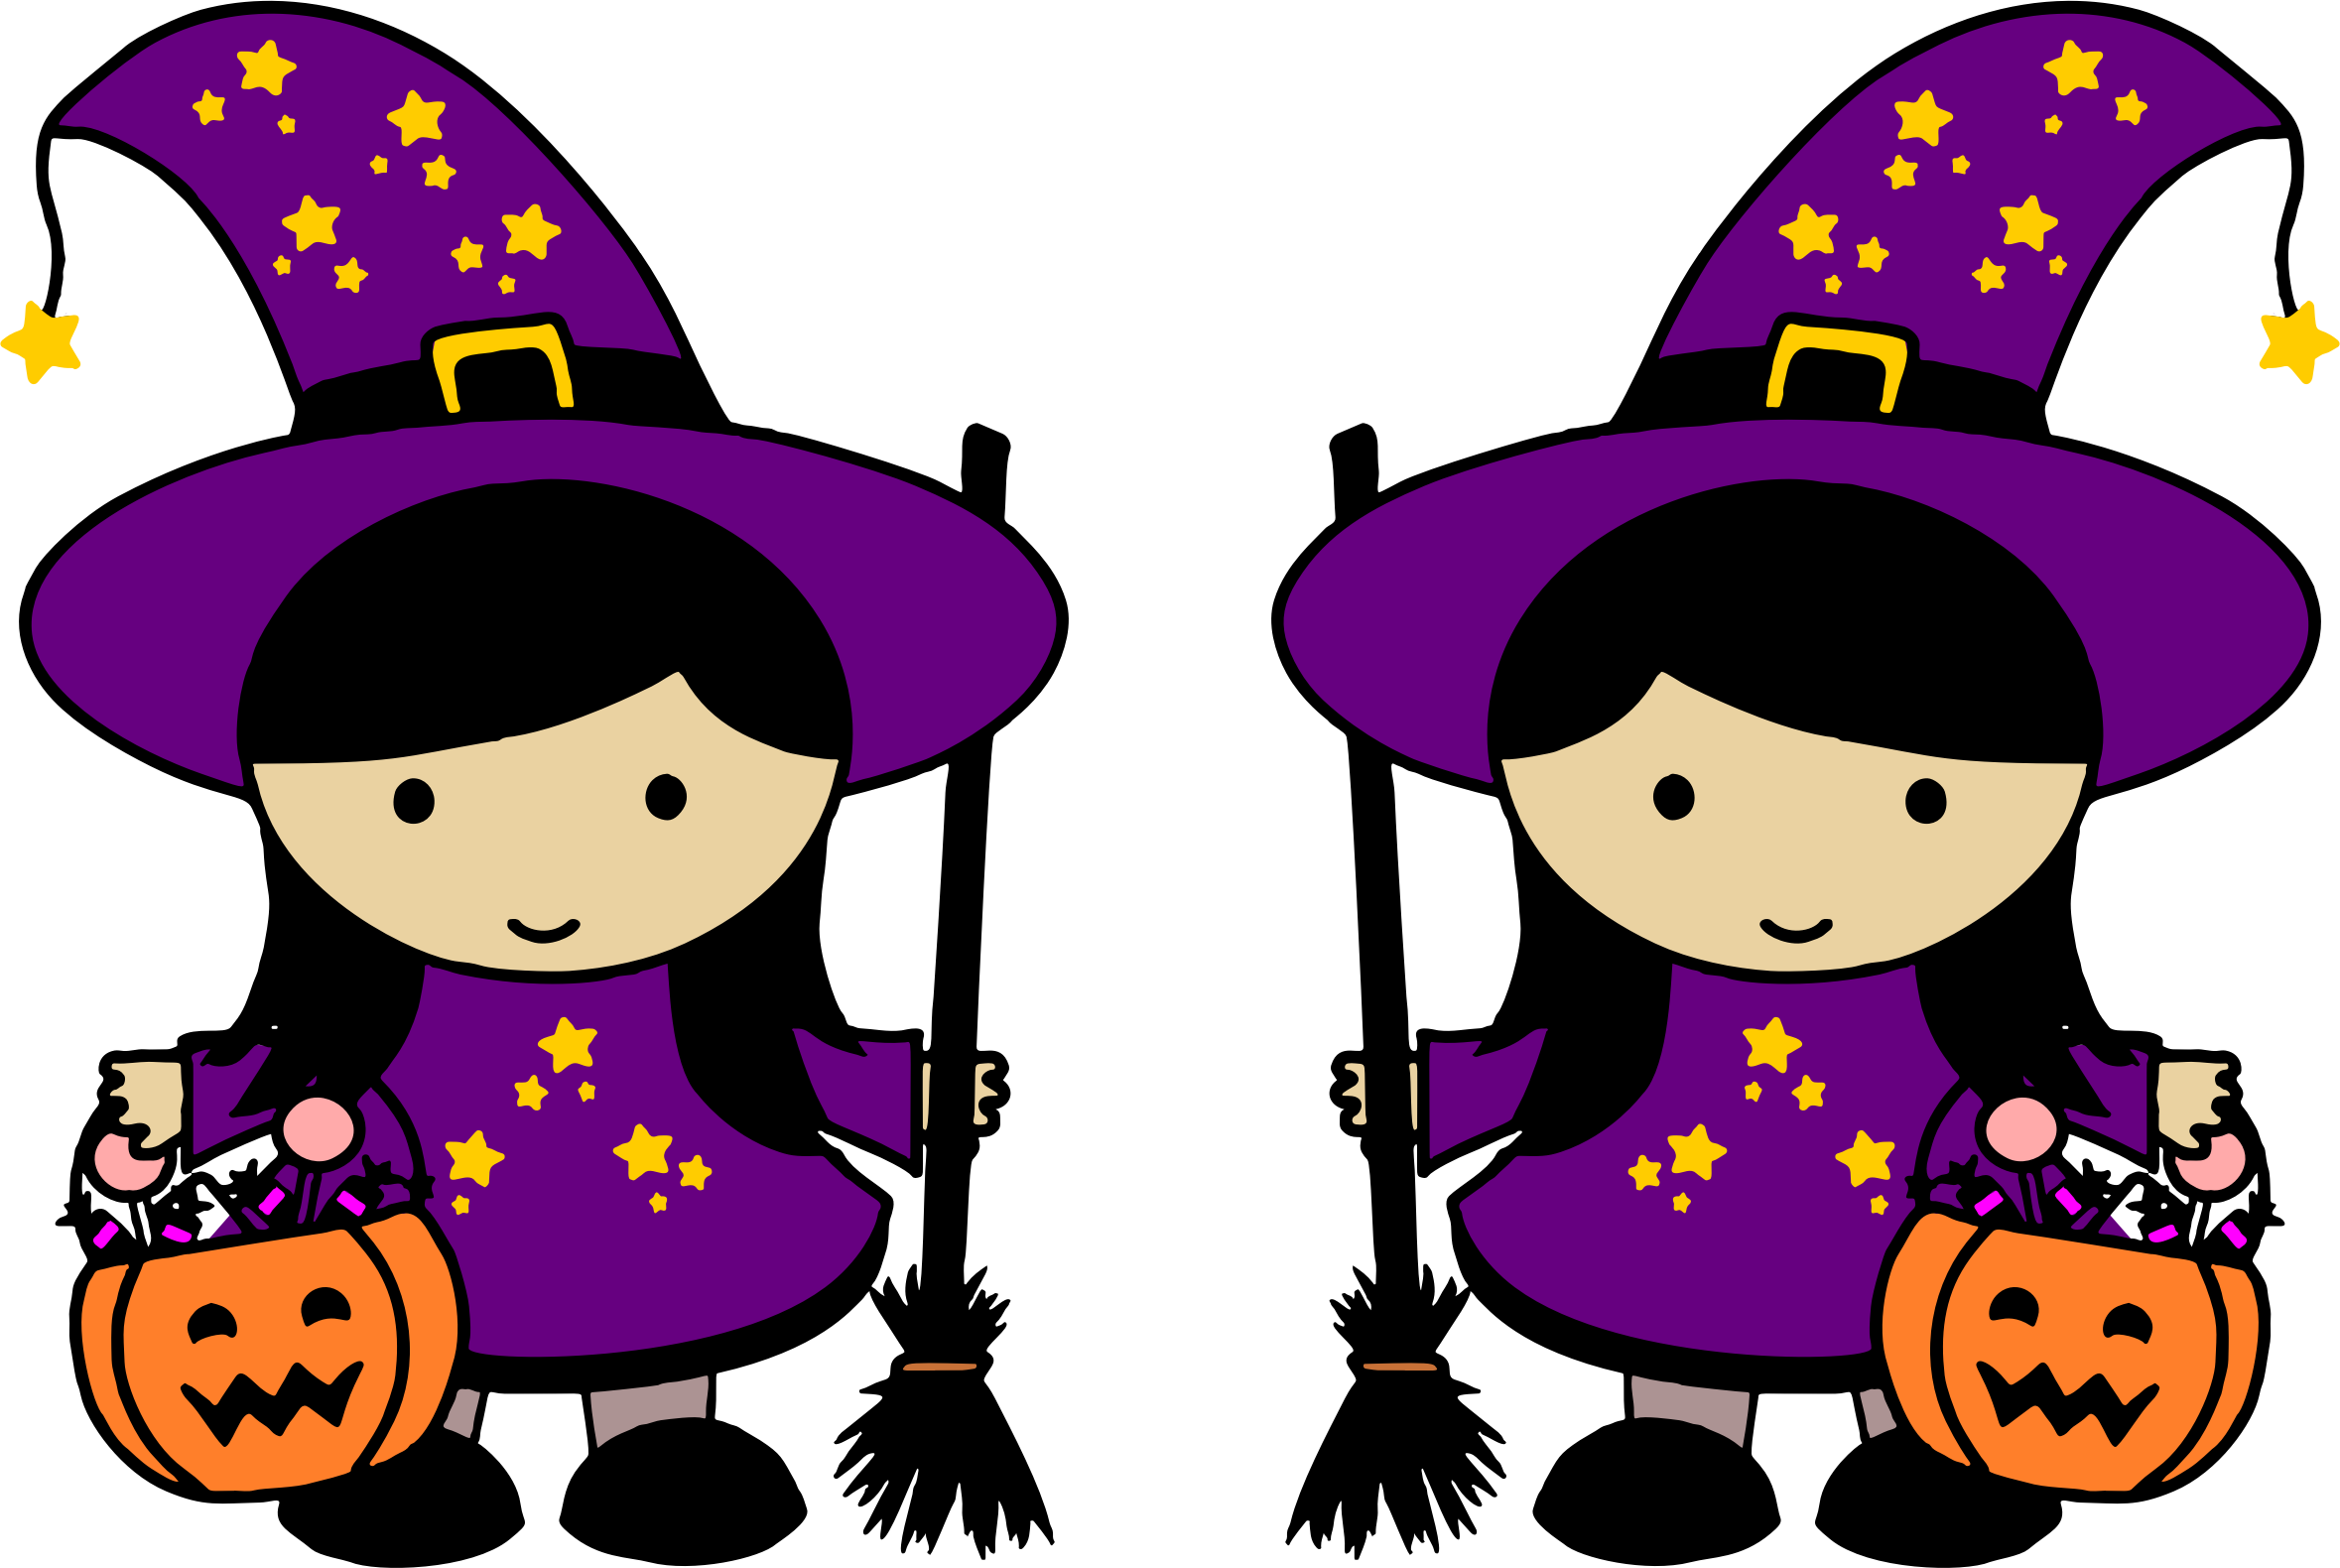 Witches clipart. Twin halloween big image